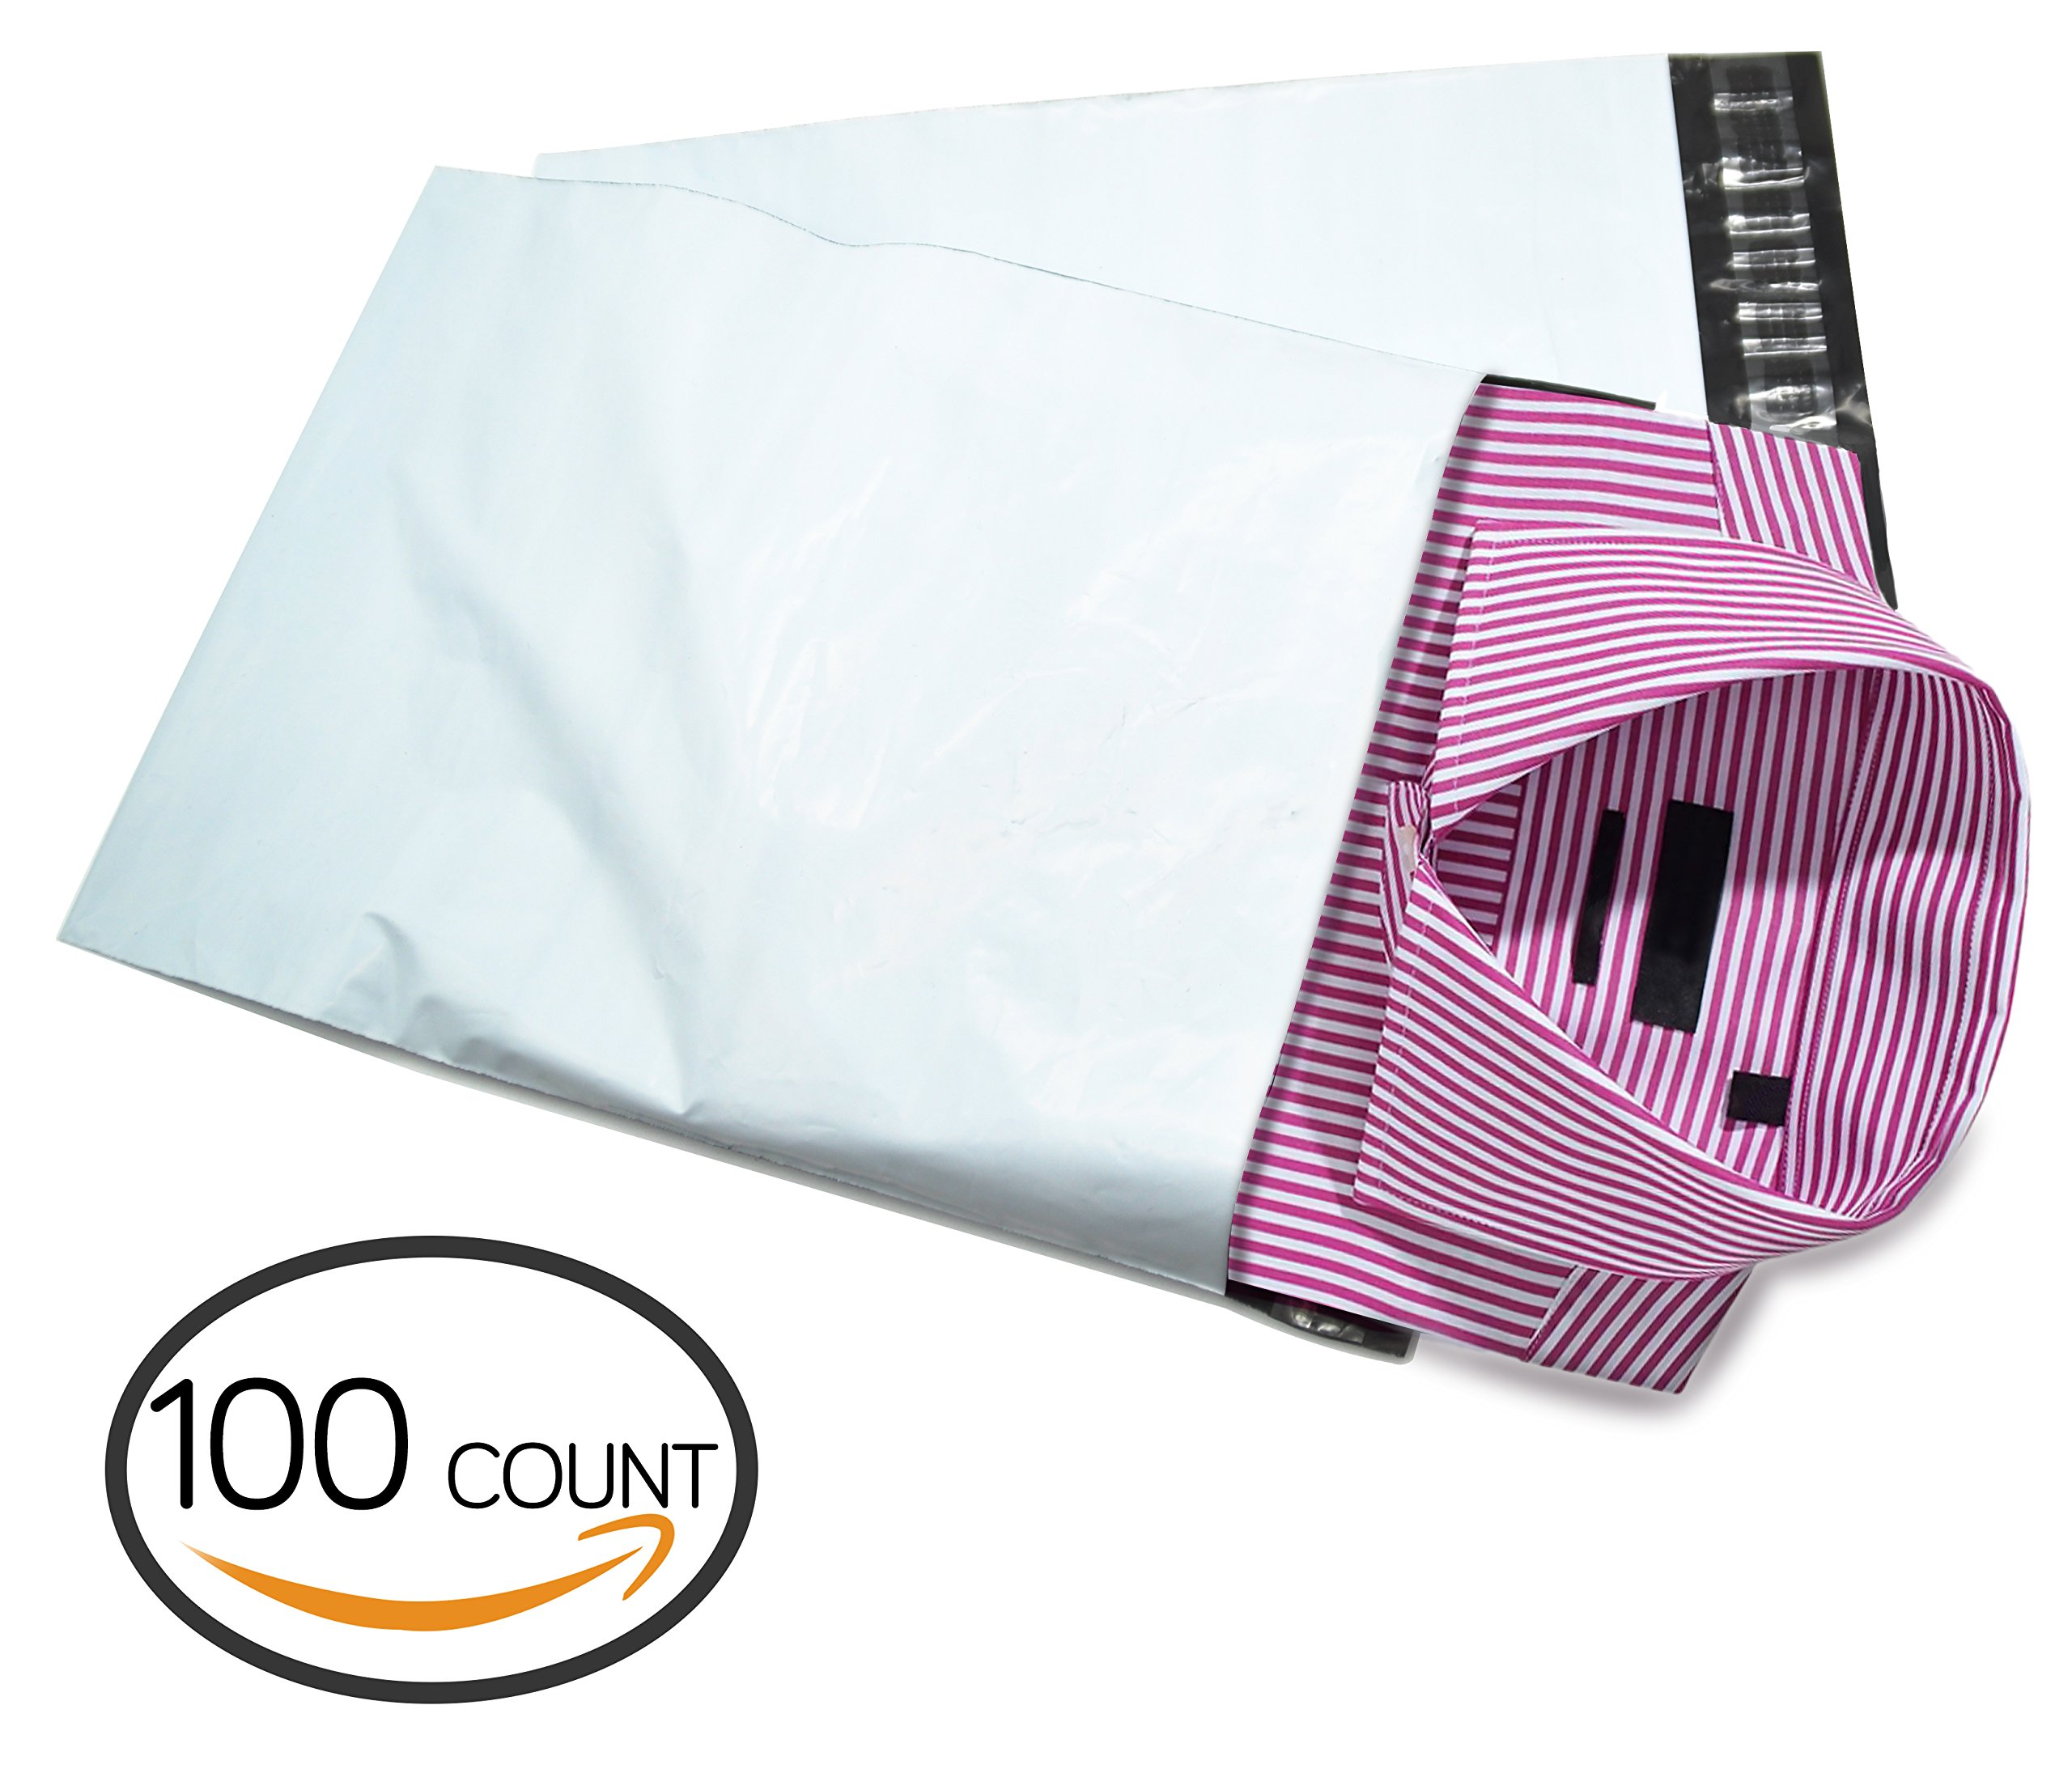 Poly Mailer,C-Pak 12.5X15.5 inch Premium Shipping Bags | Envelope Mailers Pack of 100pcs (12.5X15.5)